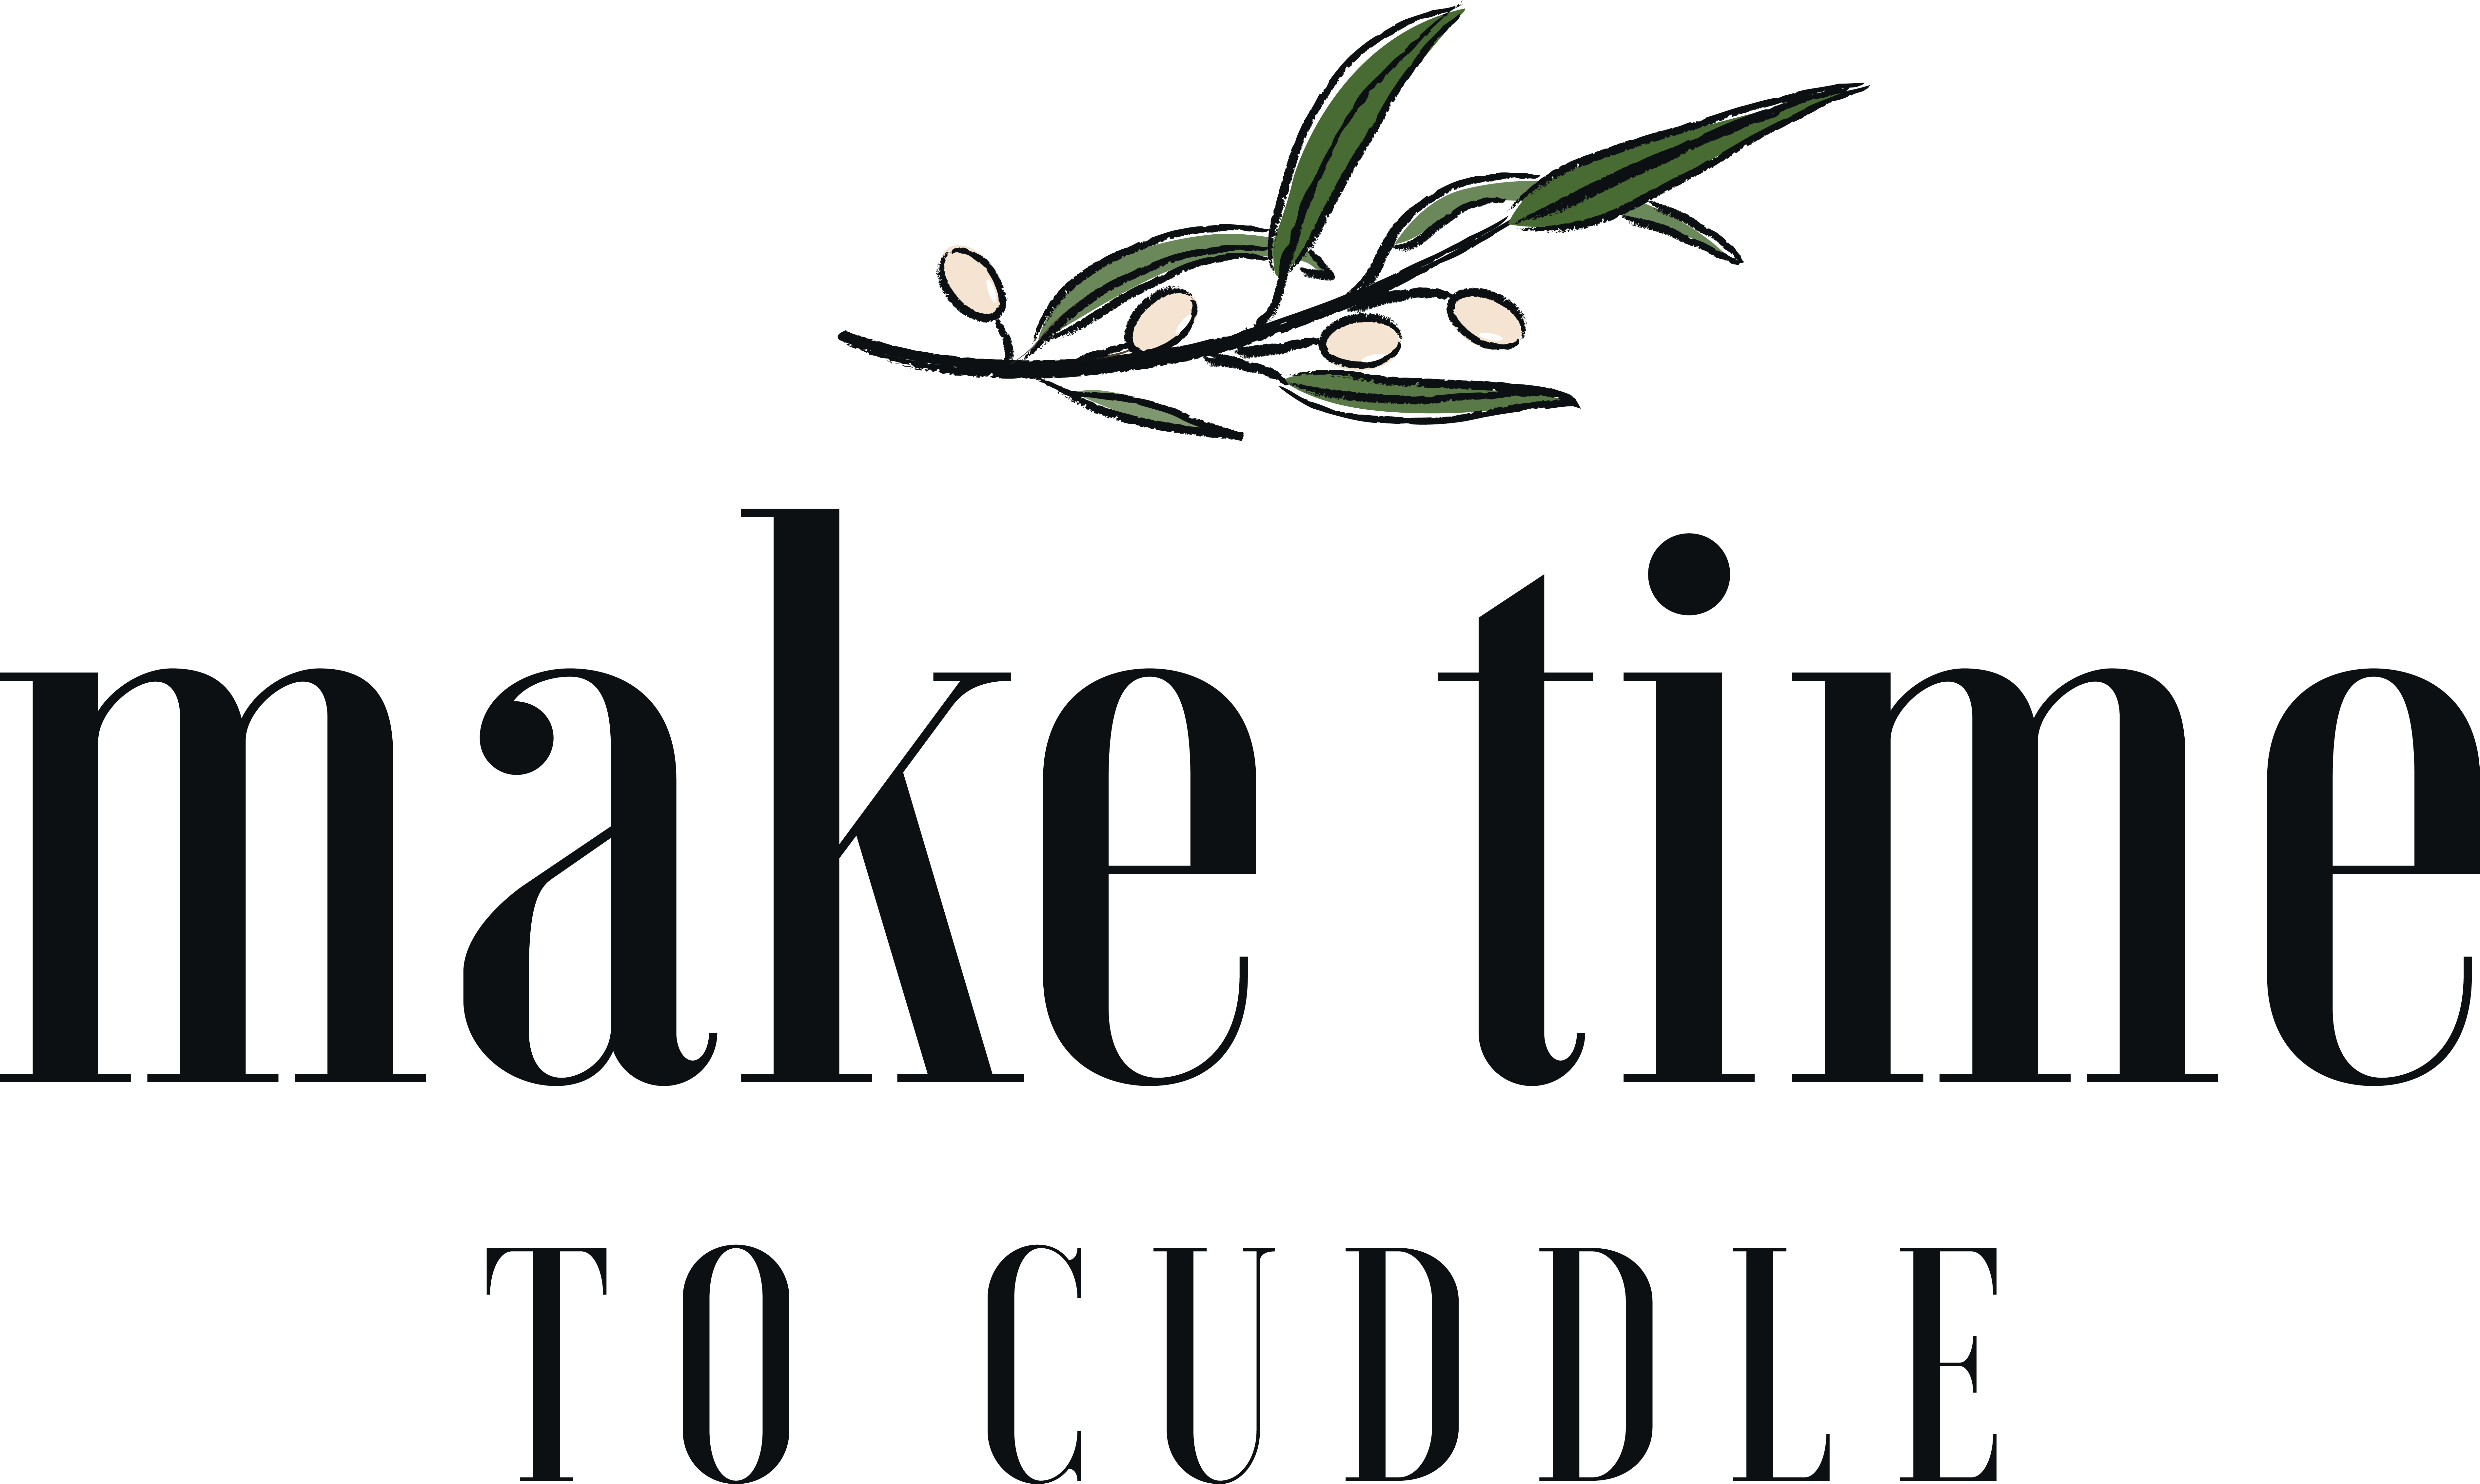 Make Time To Cuddle